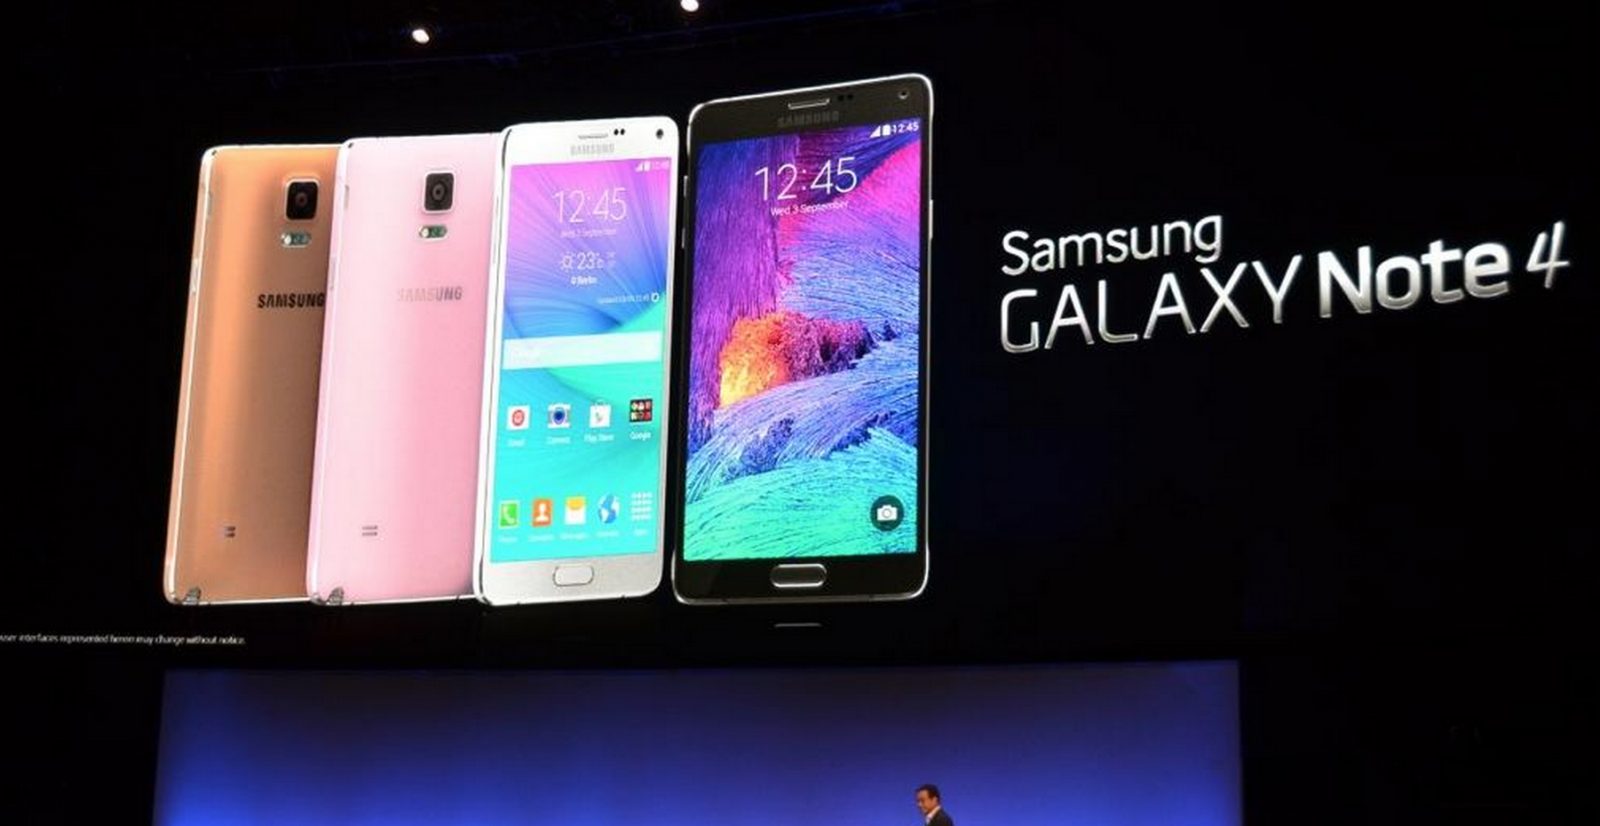 Galaxy Note 4 to be Released in India on 14 October: Intensive Apple vs Samsung Battle on the Cards